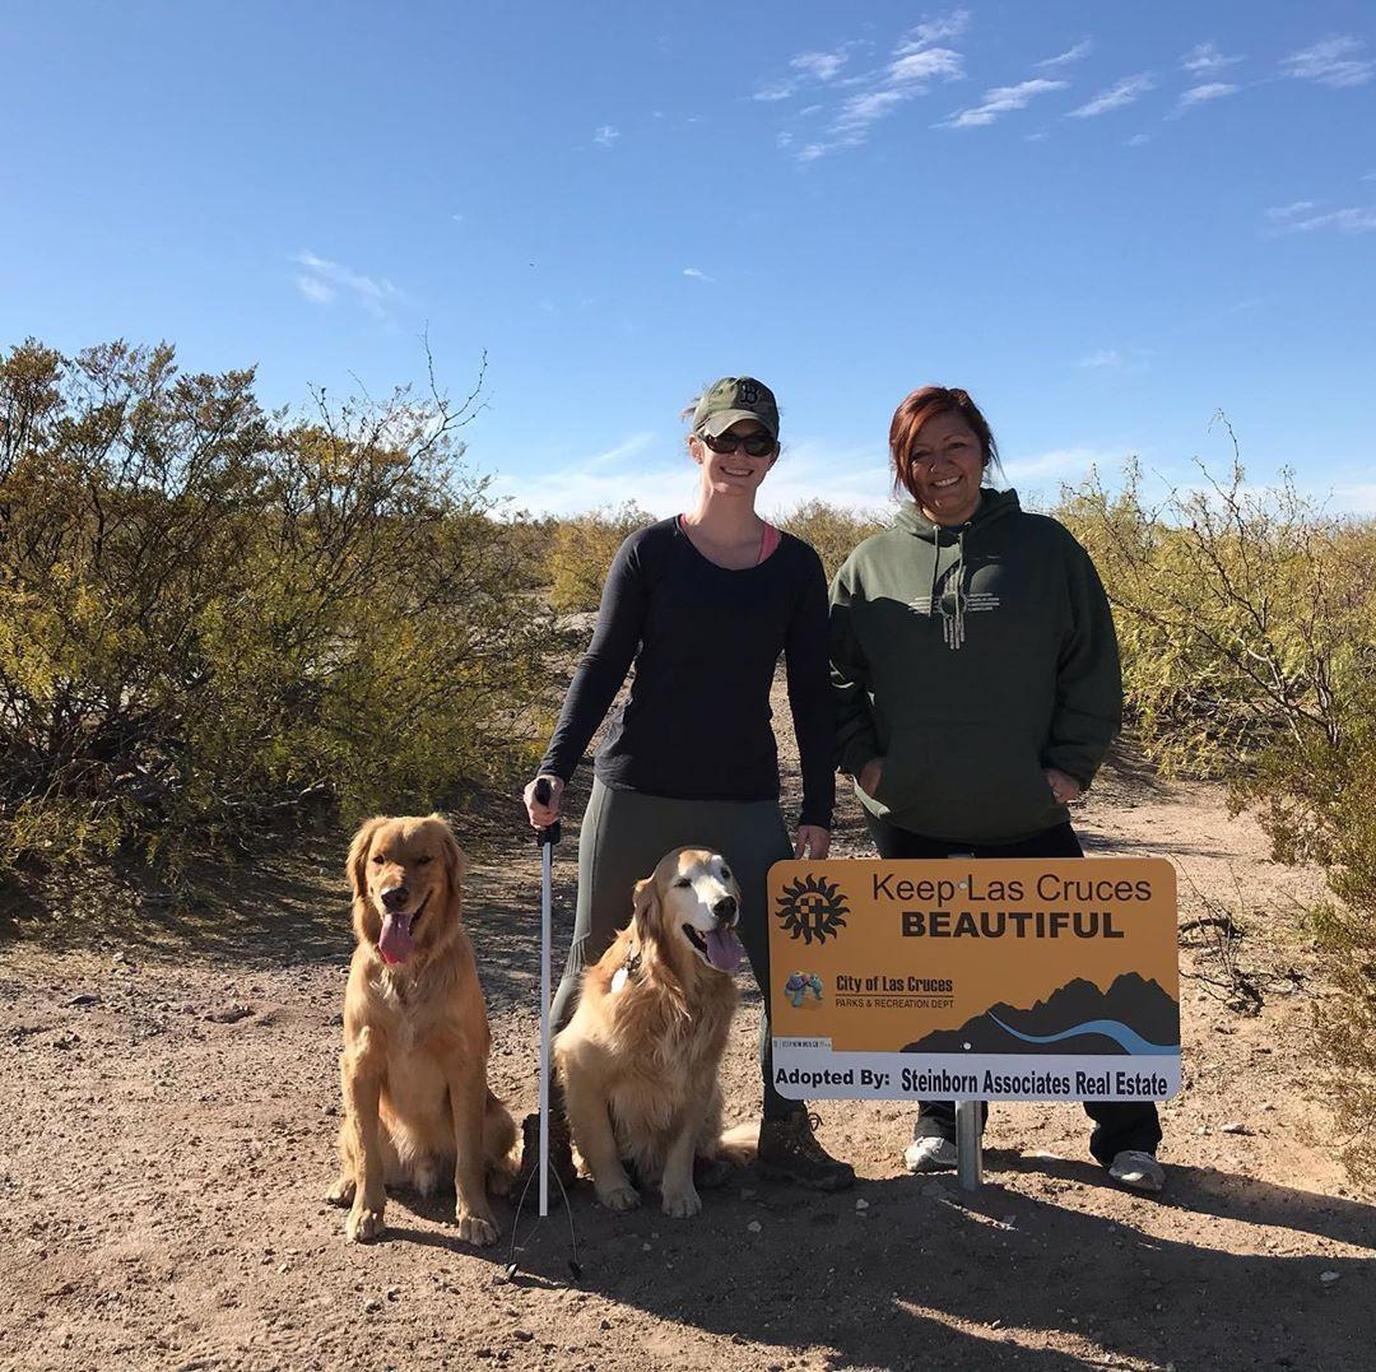 Two Woman and Two Golden Retreivers Stand By a Sign That Says Keep Las Cruces Beautiful.